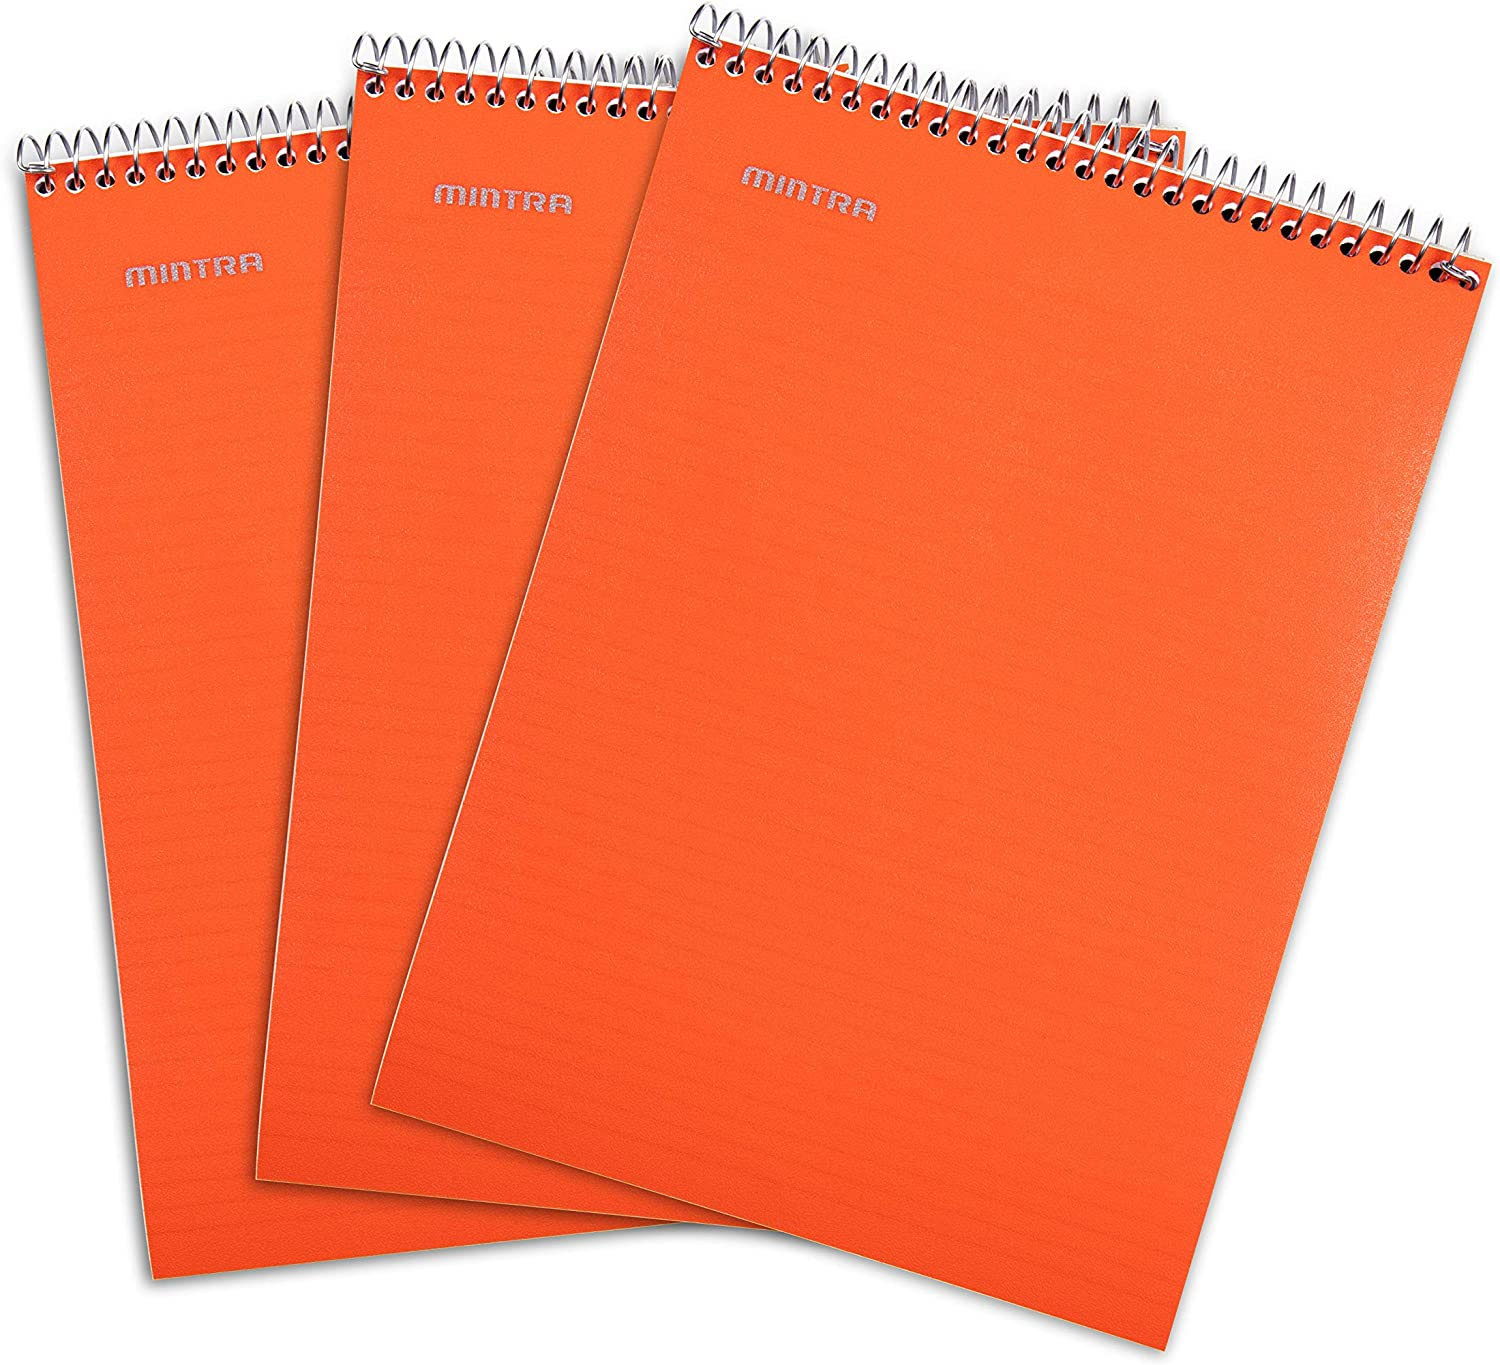 Mintra Office Top Bound Durable Spiral Notebooks - (Orange, College Ruled) 3 Pack - xStrong Back, Left-Handed, 100 Sheets, Moisture Resistant Cover, School, Office, Business, Professional